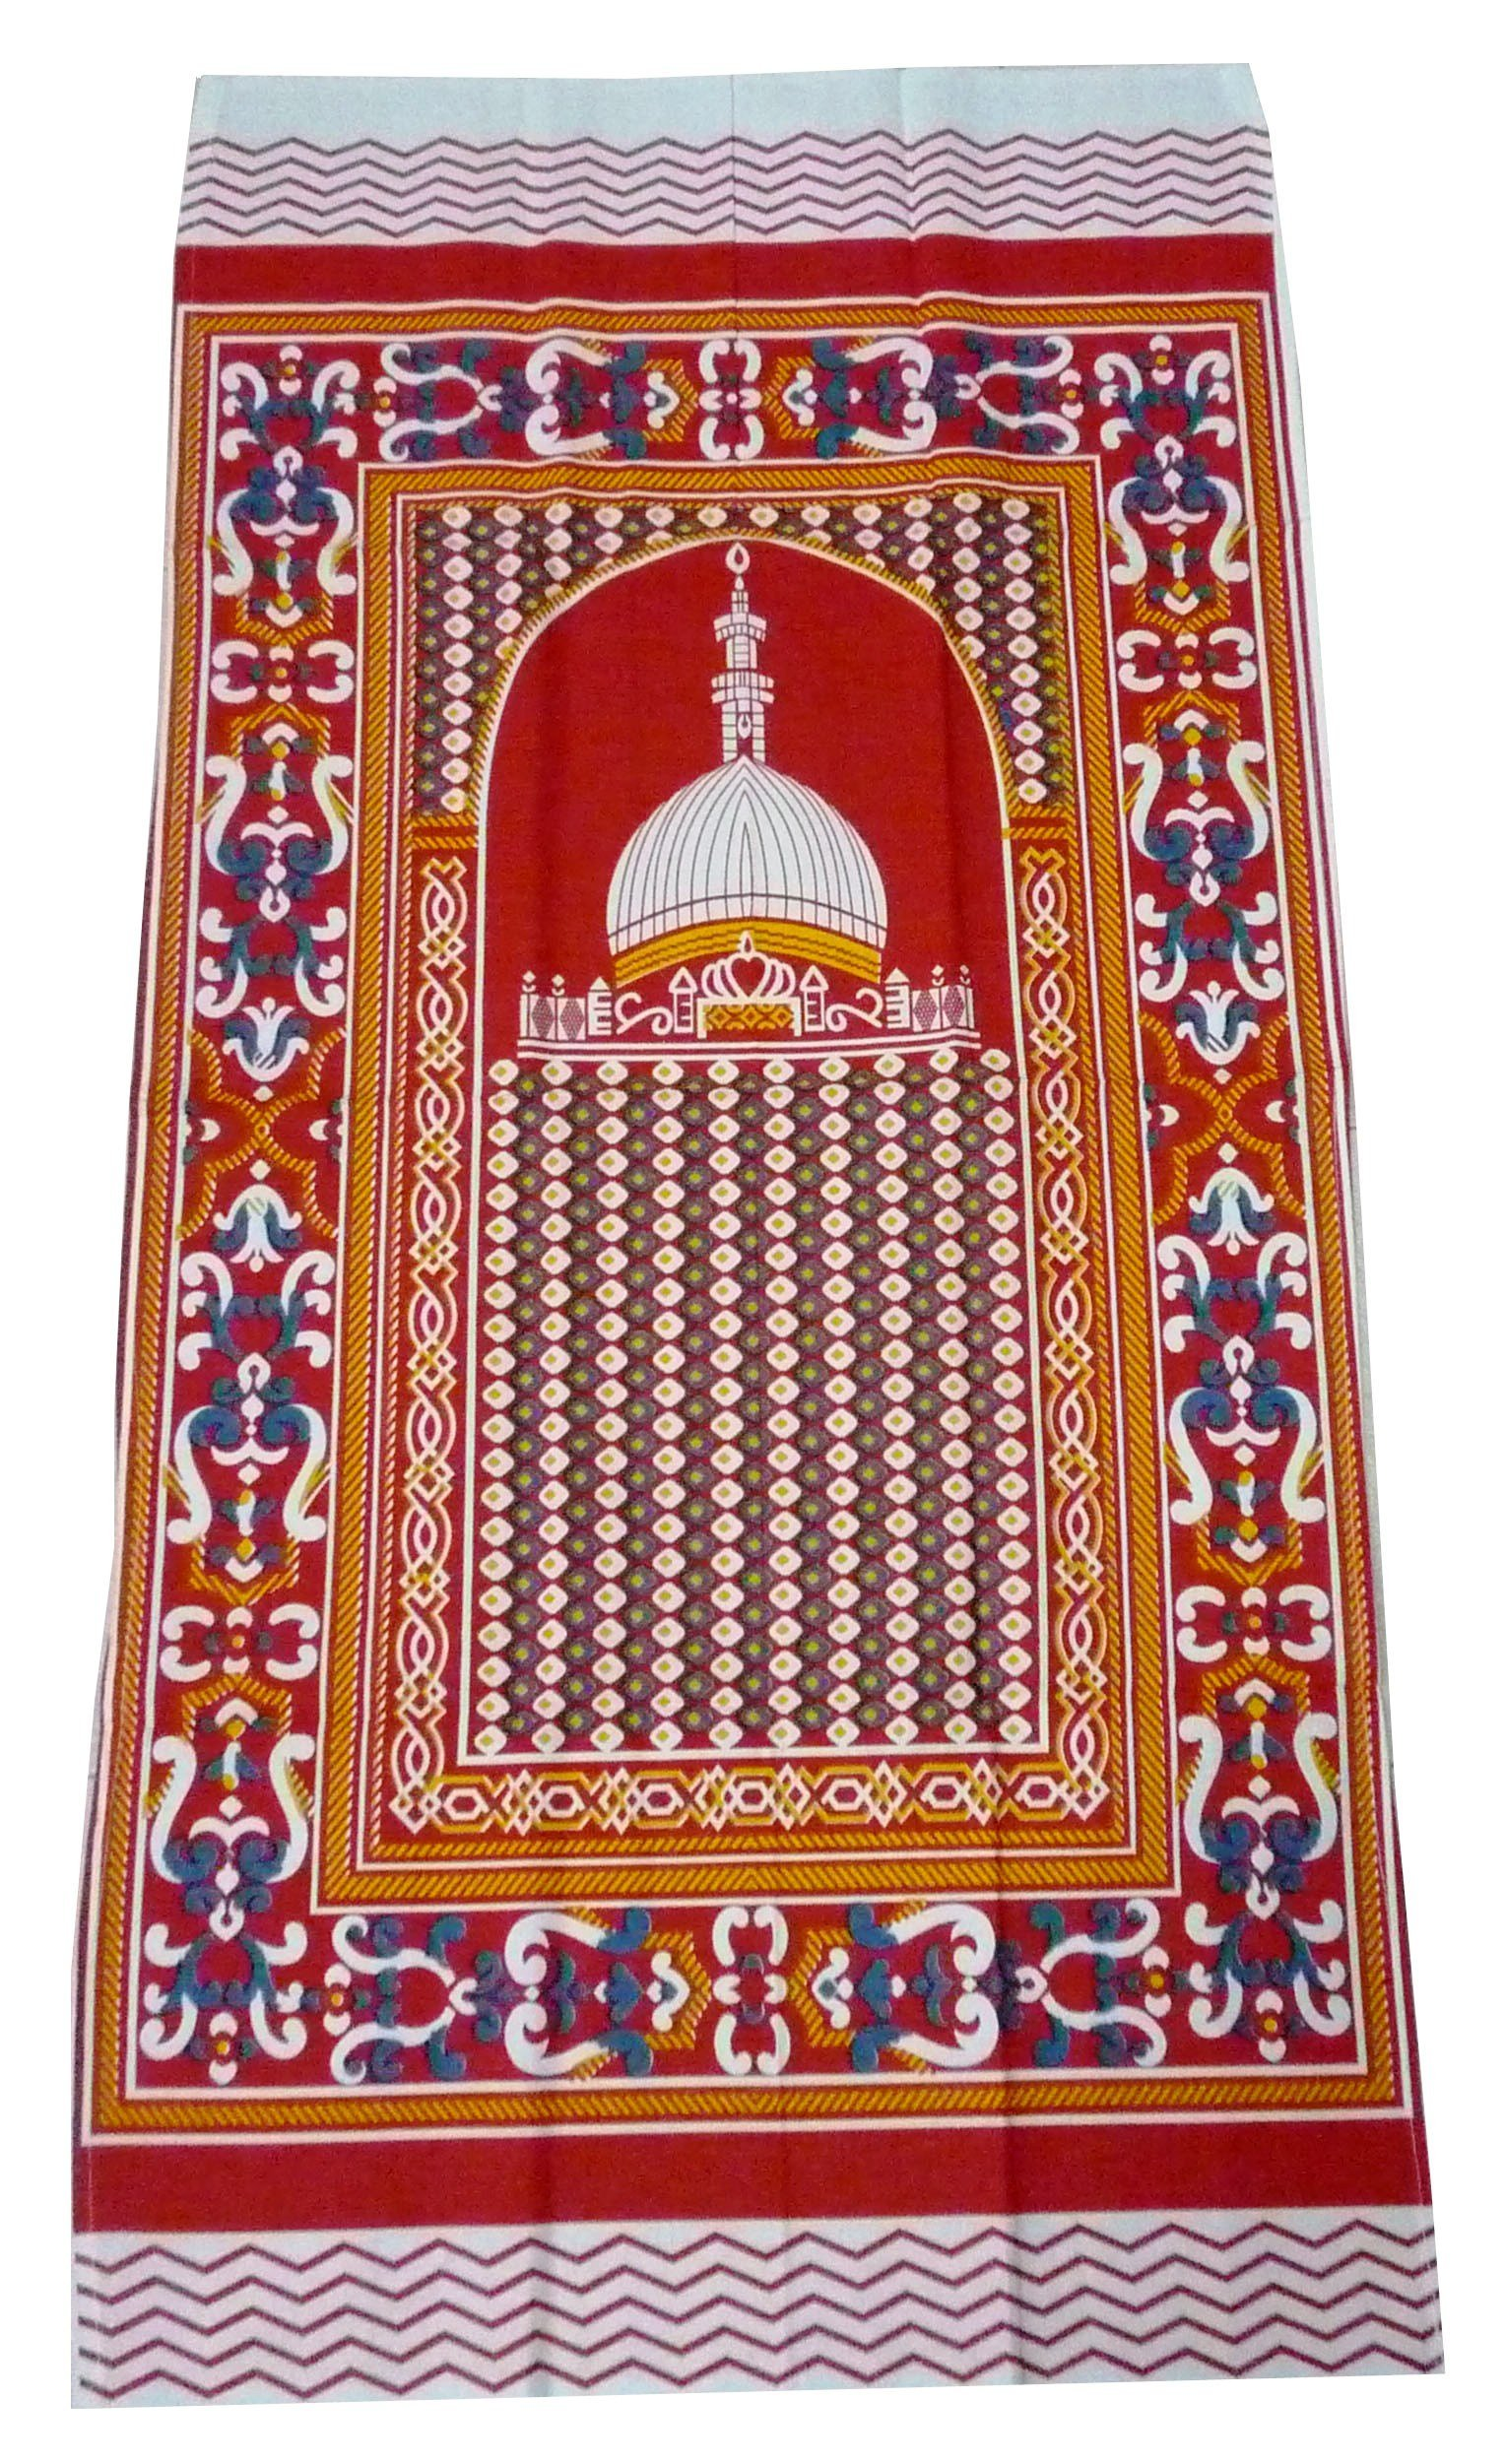 Portable Prayer Mat Thin Cloth Islam Muslim Namaz Sajadah School Camping Backpack Travel Office Sajjadah (Fresh Red)